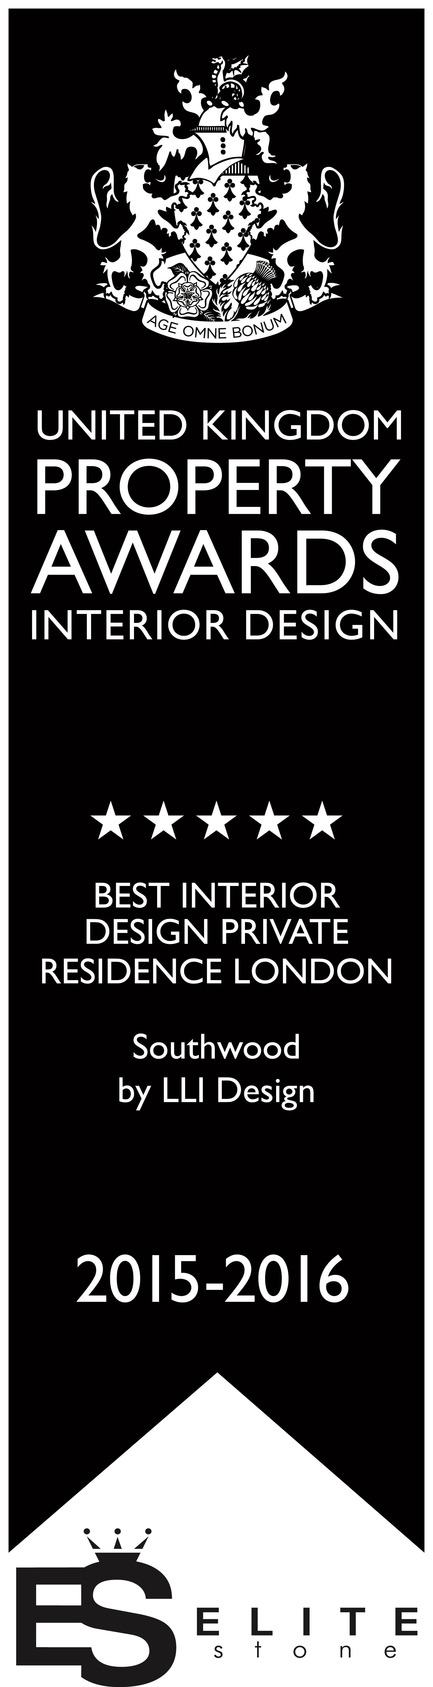 Dossier de presse | 1701-02 - Communiqué de presse | Southwood -Award winning contemporary London townhouse - LLI Design - Residential Interior Design - Southwood - Best Interior Design Private Residence, London - UK Property Awards - 2015 / 16 - Crédit photo : United Kingdom Property Awards